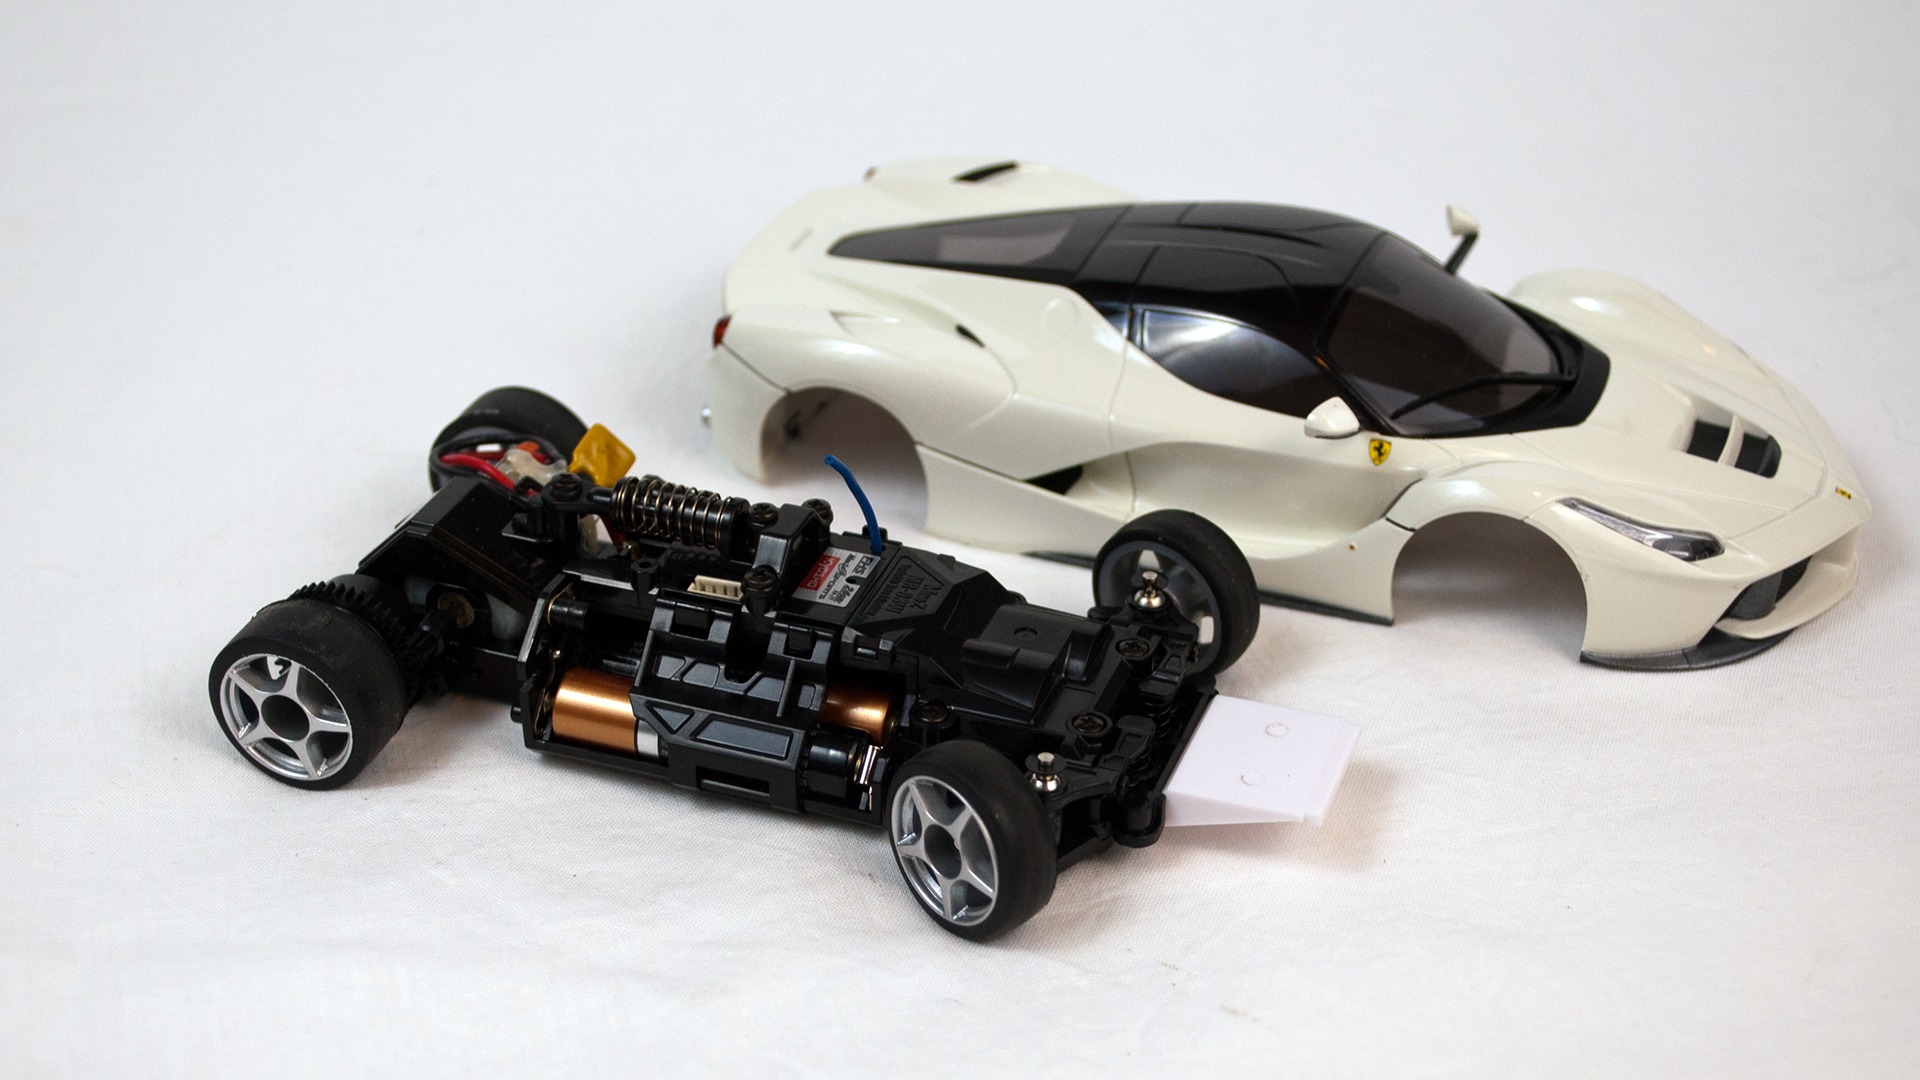 The body simply snaps on to the Mini Z chassis Numerous other scale like bo s are available